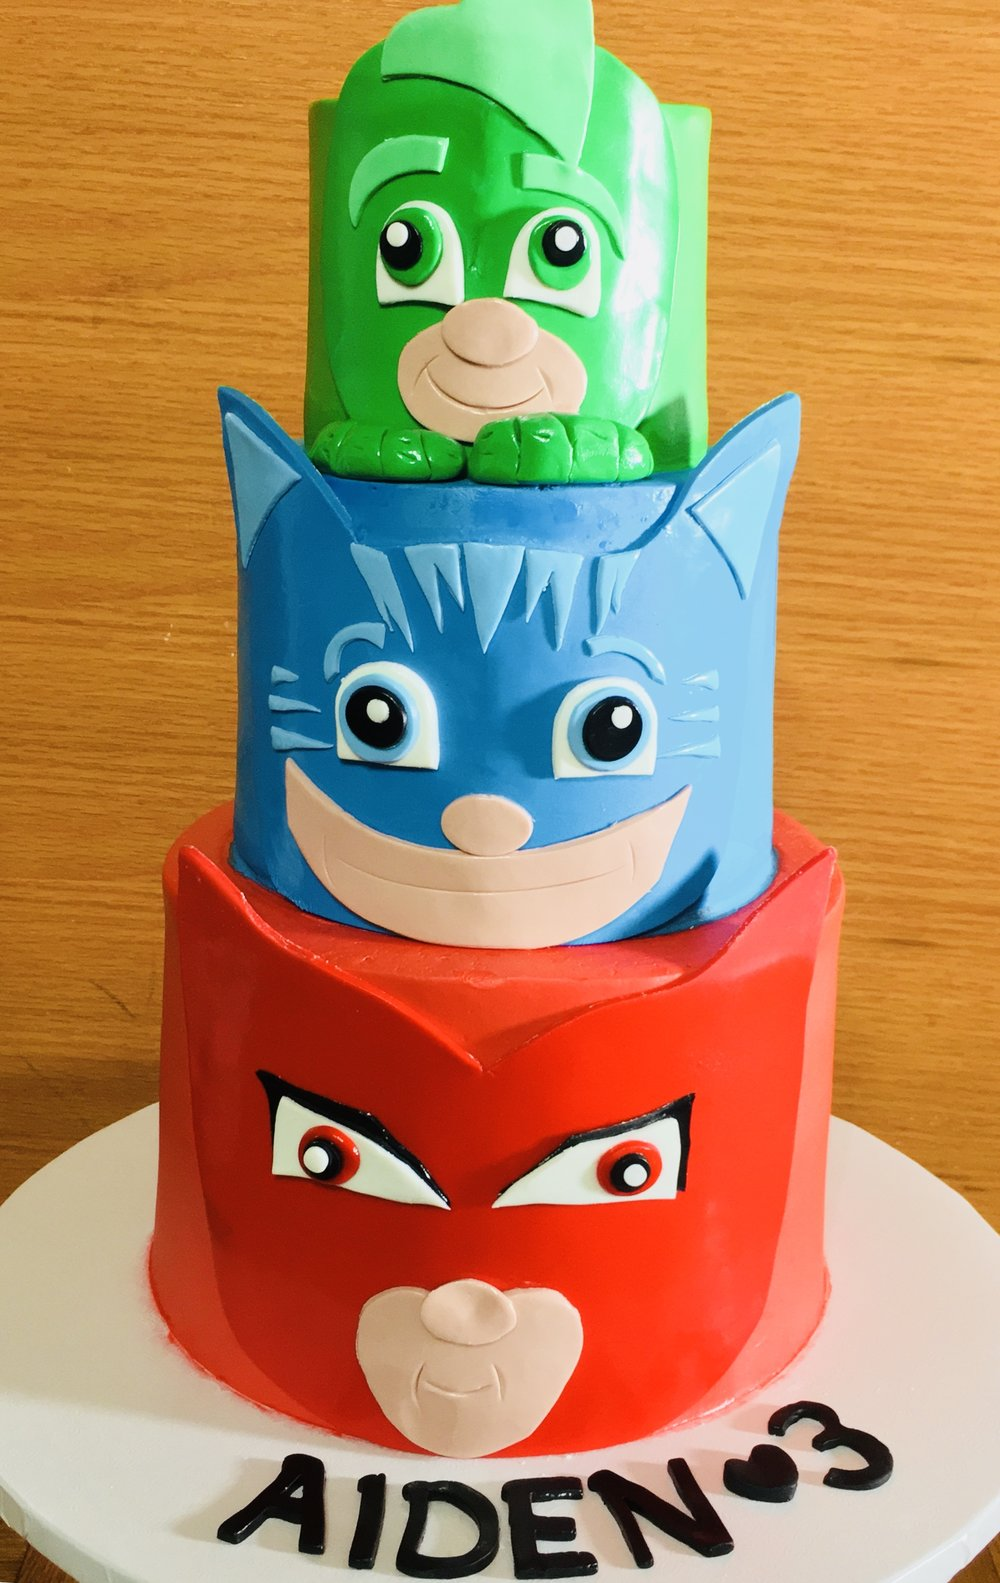 PJ Mask Birthday Cake - Mwokaji Cakery .jpg